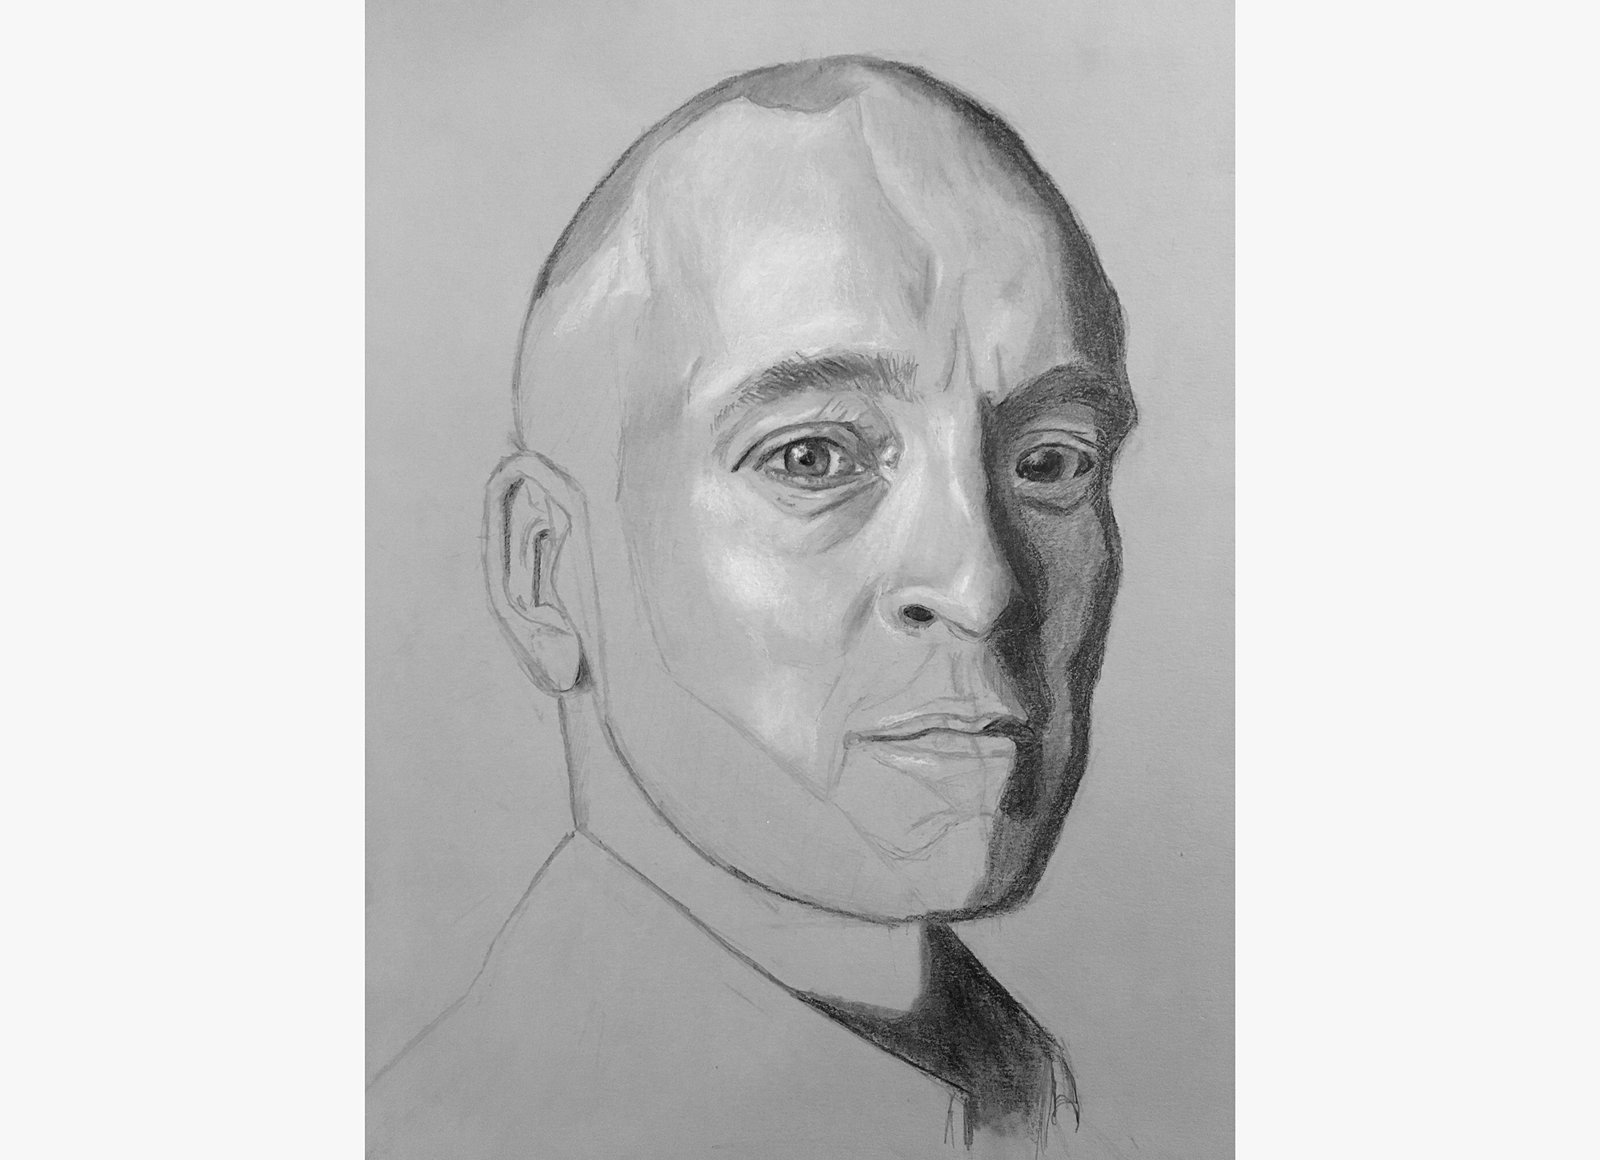 how i learned to draw realistic portraits in only 30 days